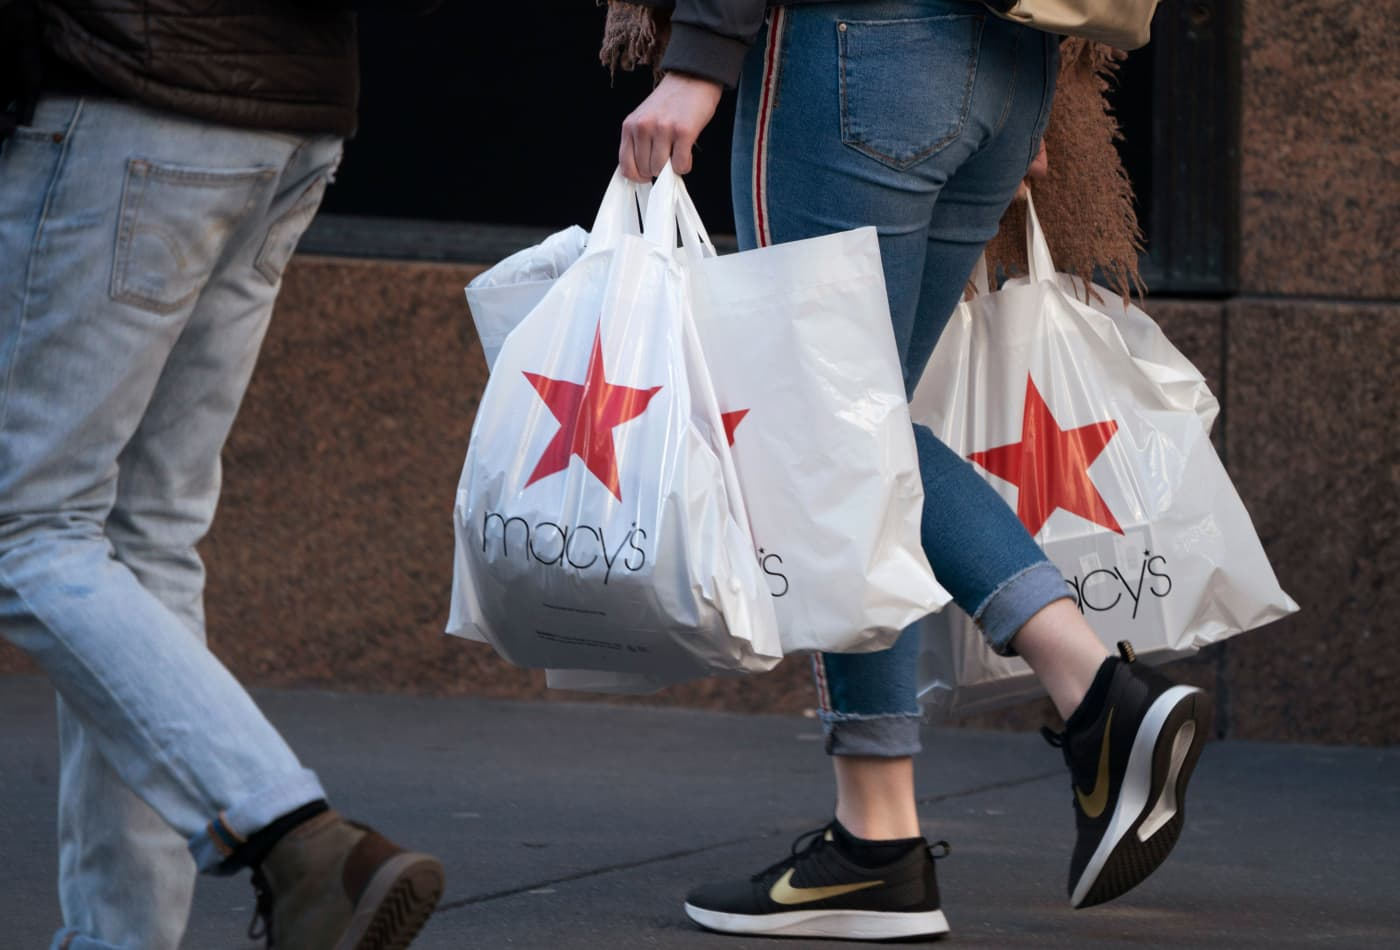 Macy's shares jump after earnings top estimates, helped by a last-minute holiday sales boost